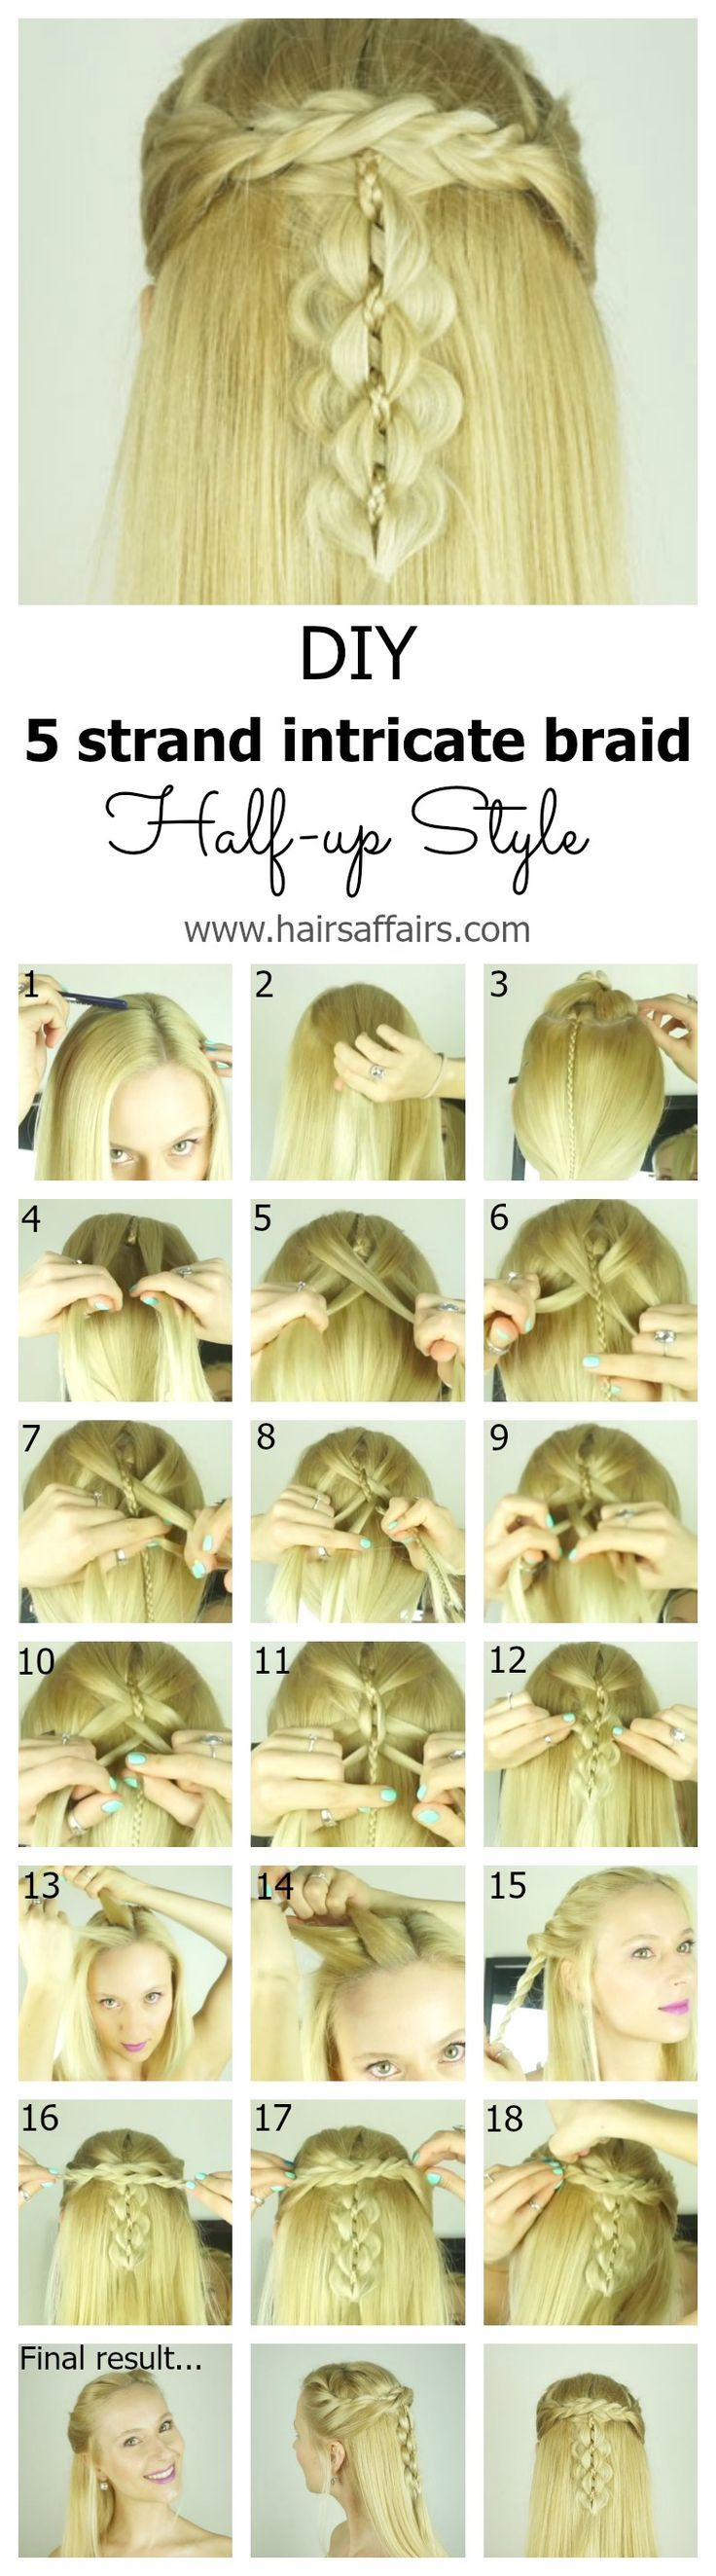 245 best images on pinterest hair dos hairstyles videos the intricate five strand braid for shorter or medium hair hairstyles videosplaits solutioingenieria Image collections